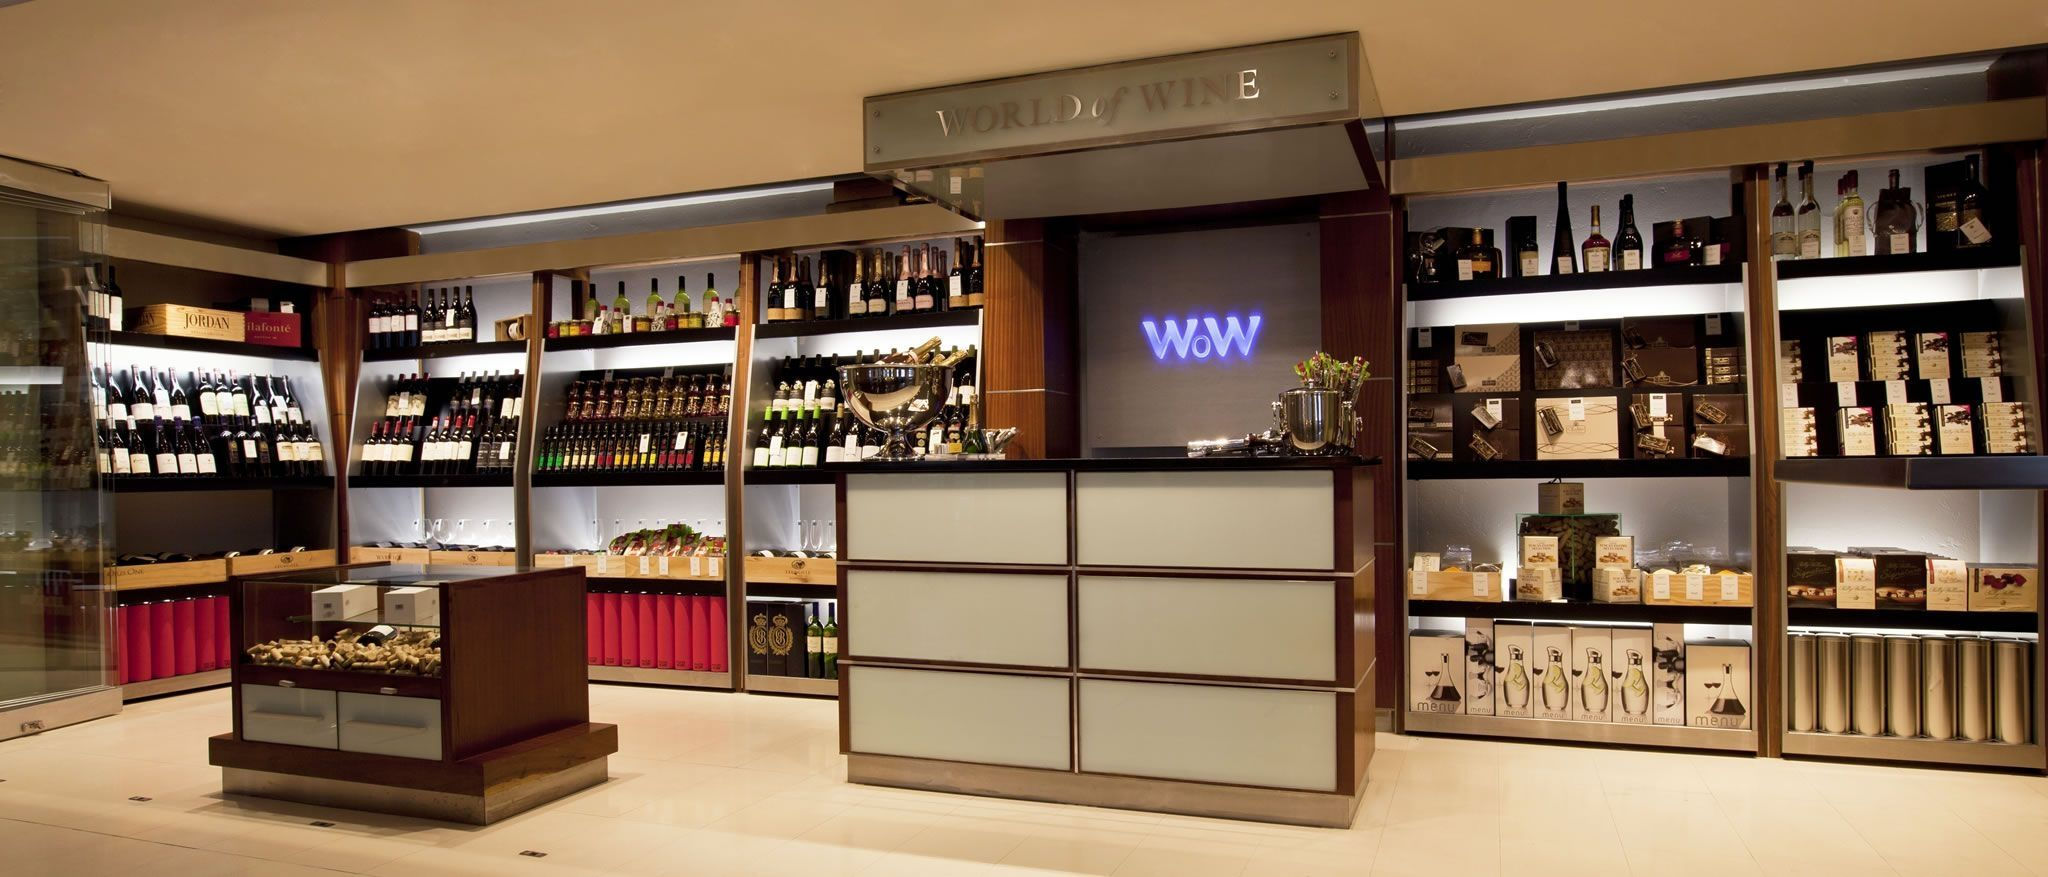 The Westin Cape Town, World of Wine Shop on Ground Floor